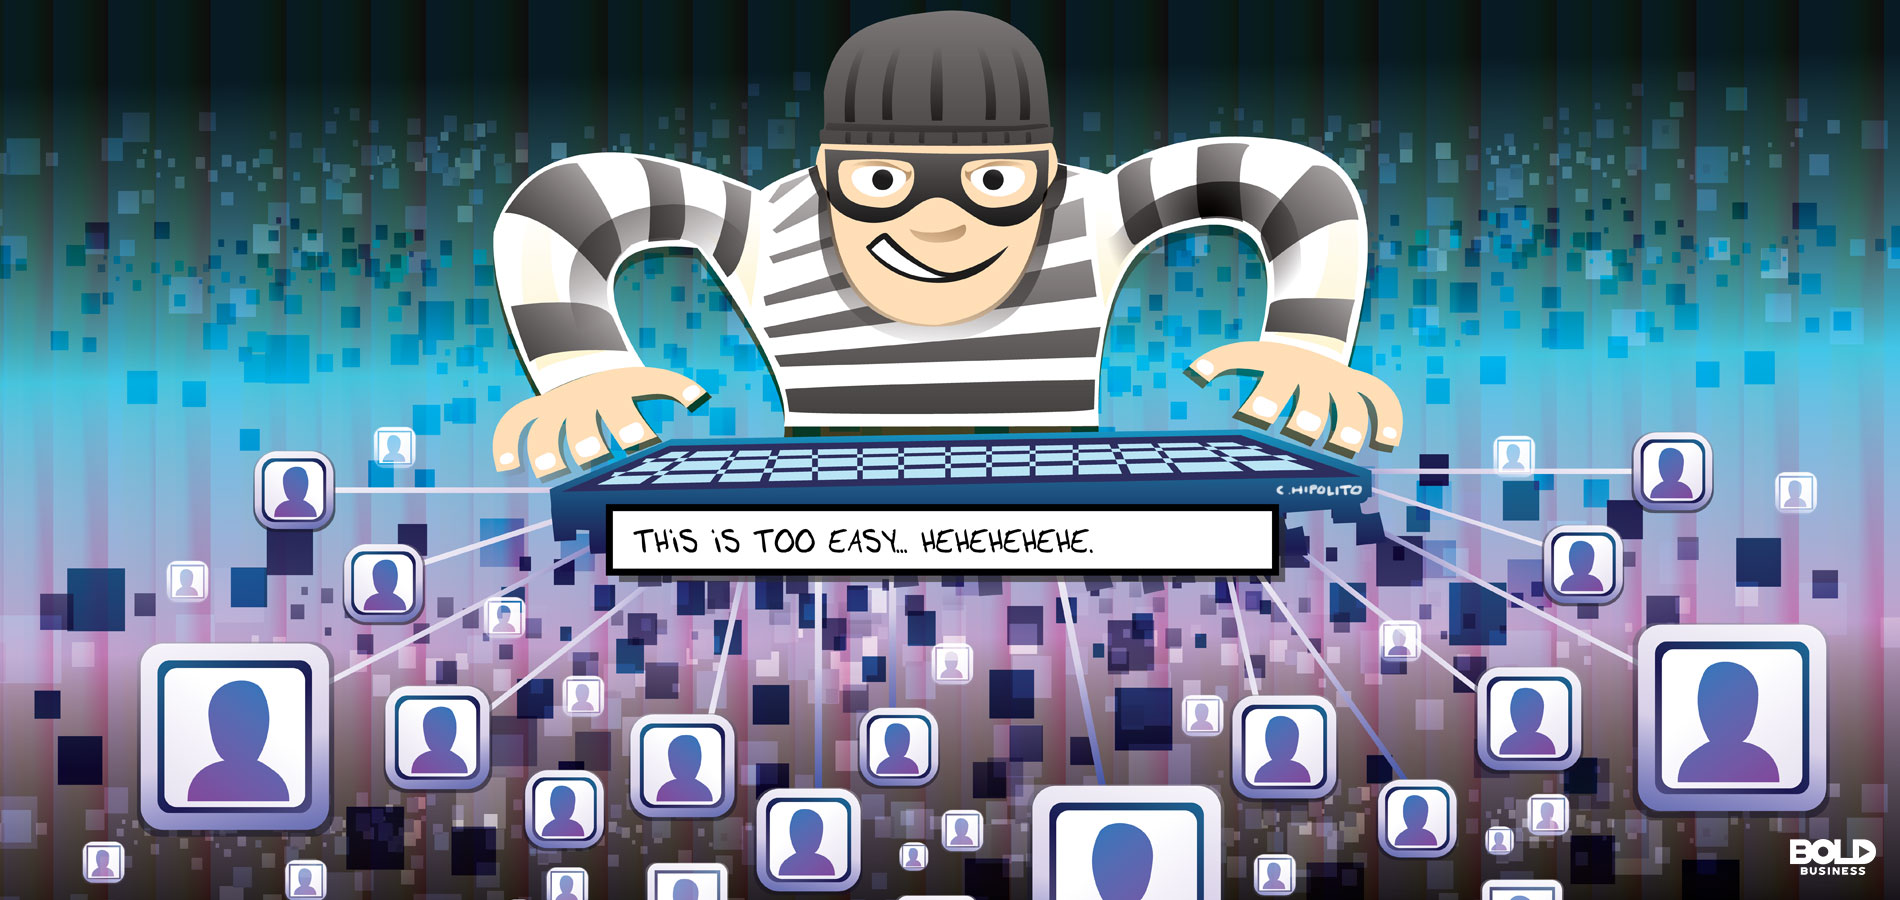 cartoon featuring cyber criminal grinning over hacked computers